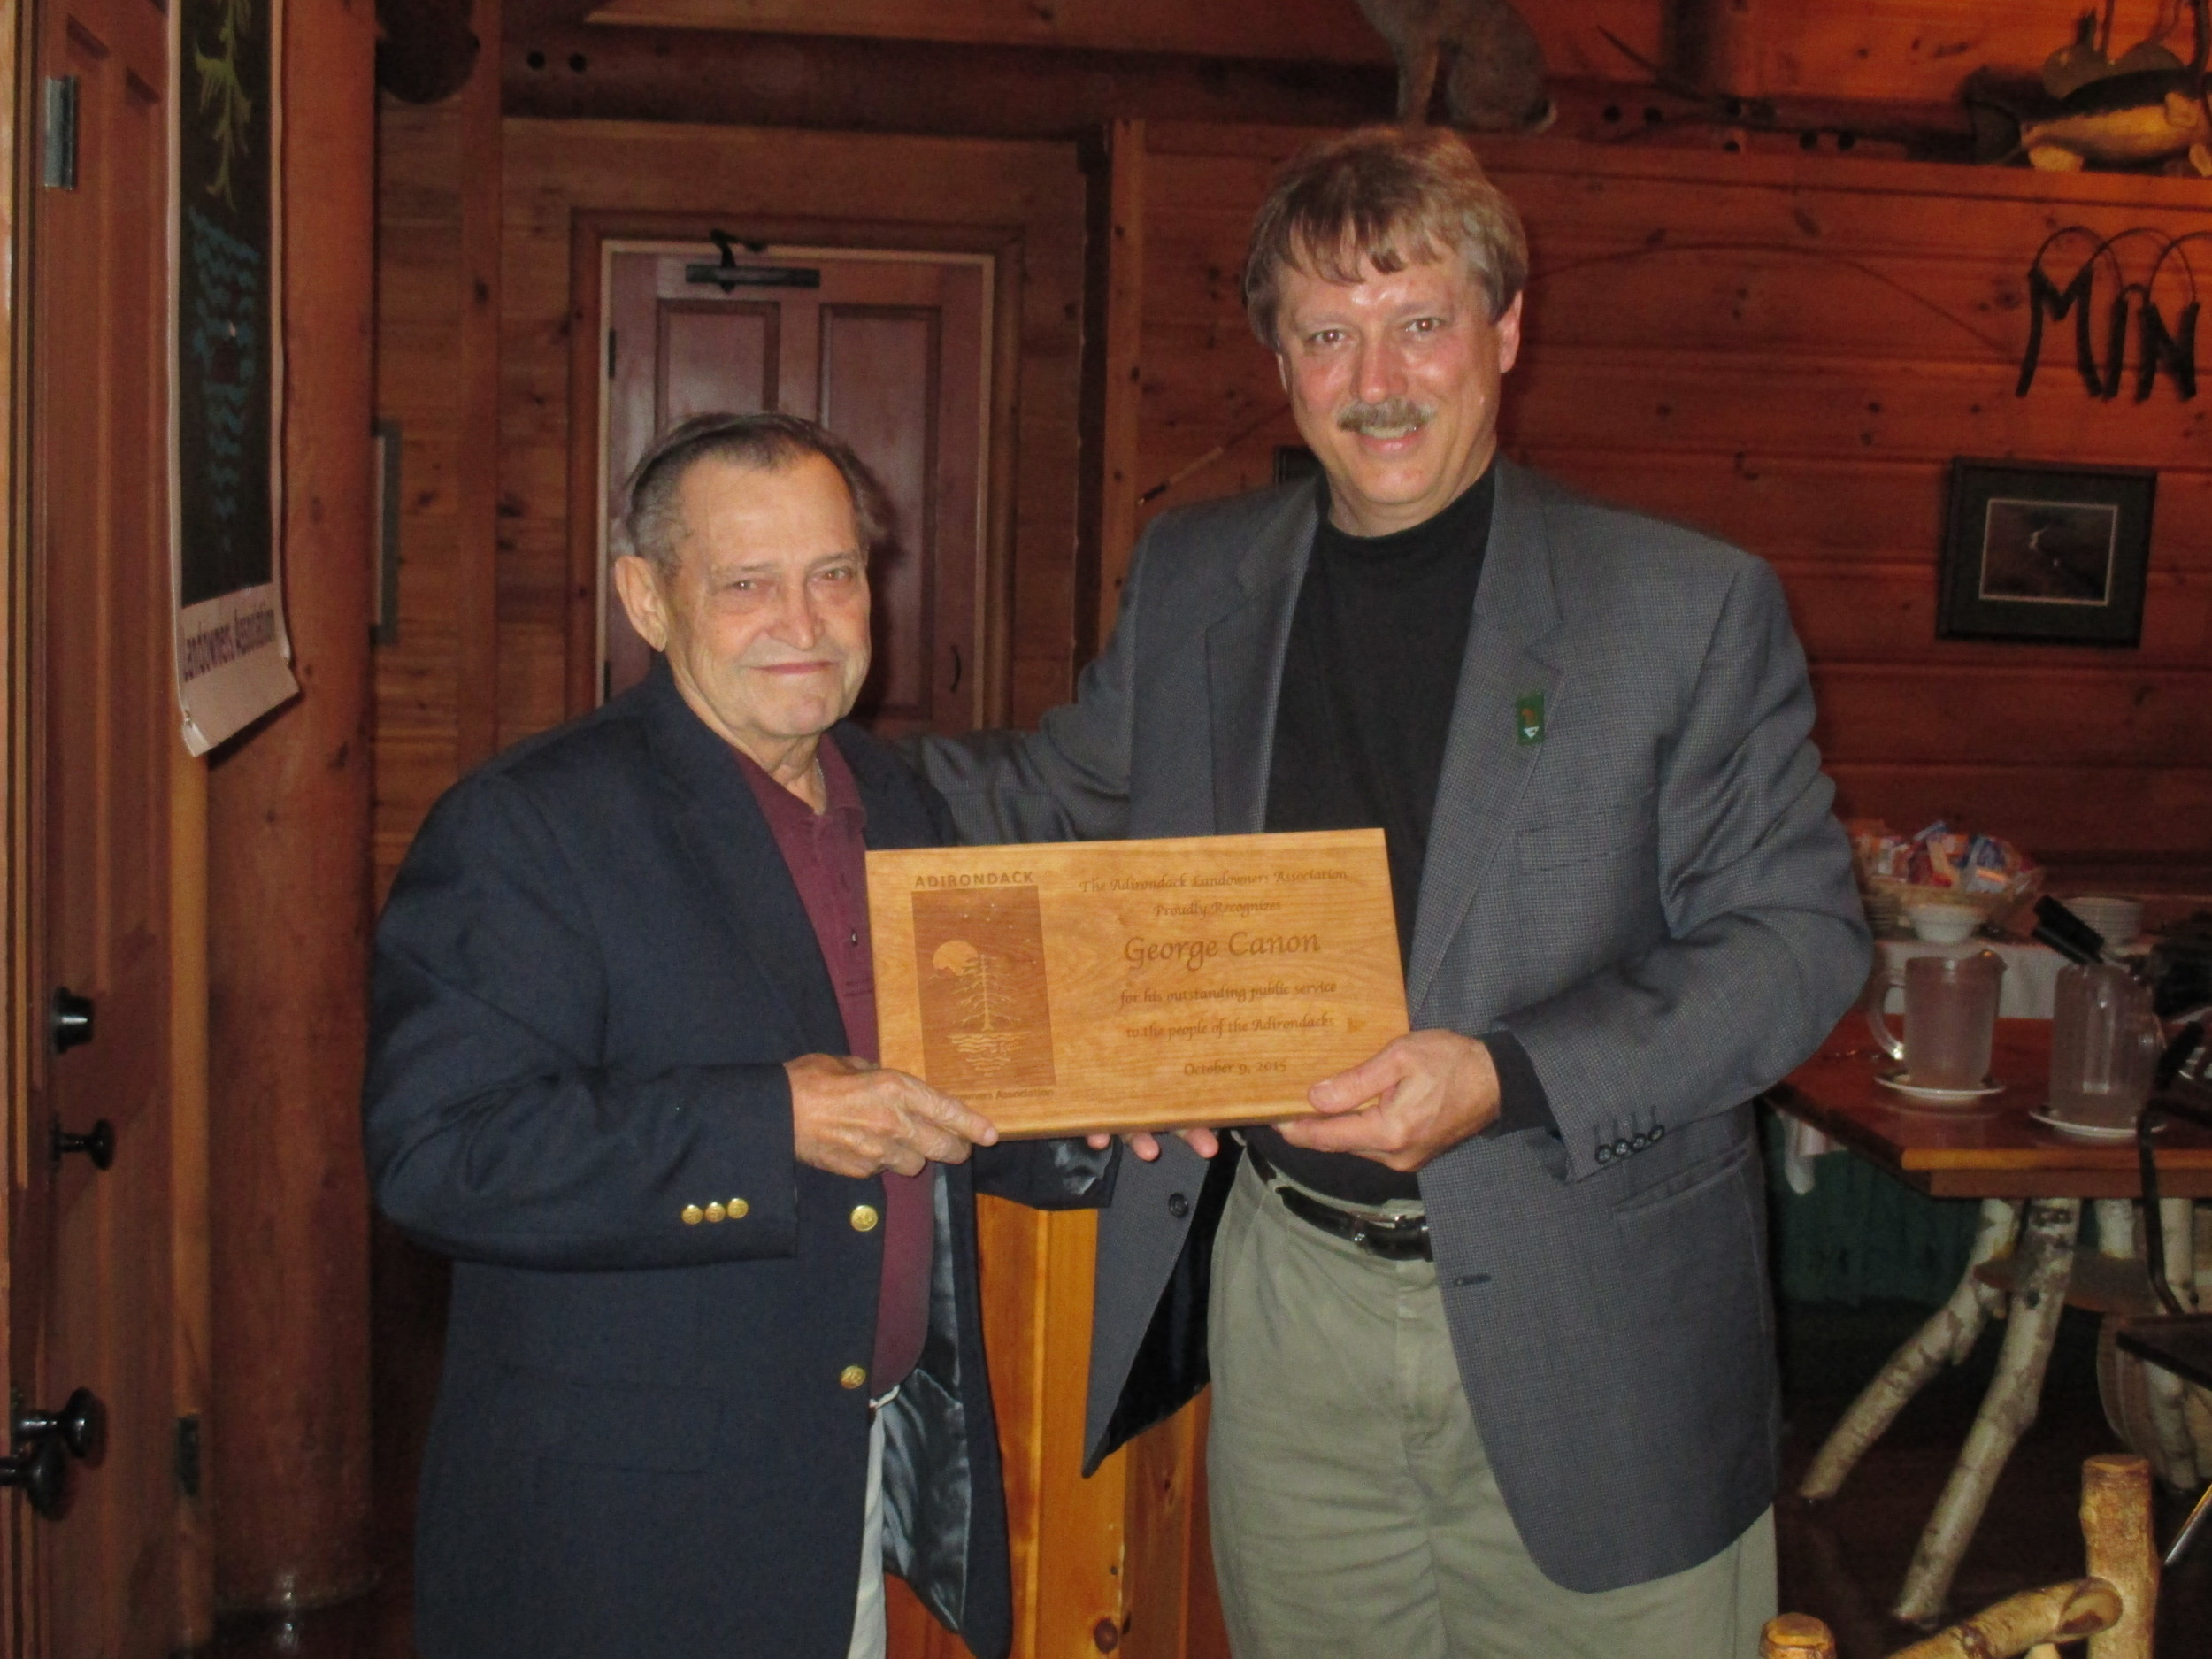 Town of Newcomb Supervisor, George Canon receives a special tribute from the ALA in recognition of his retirement.